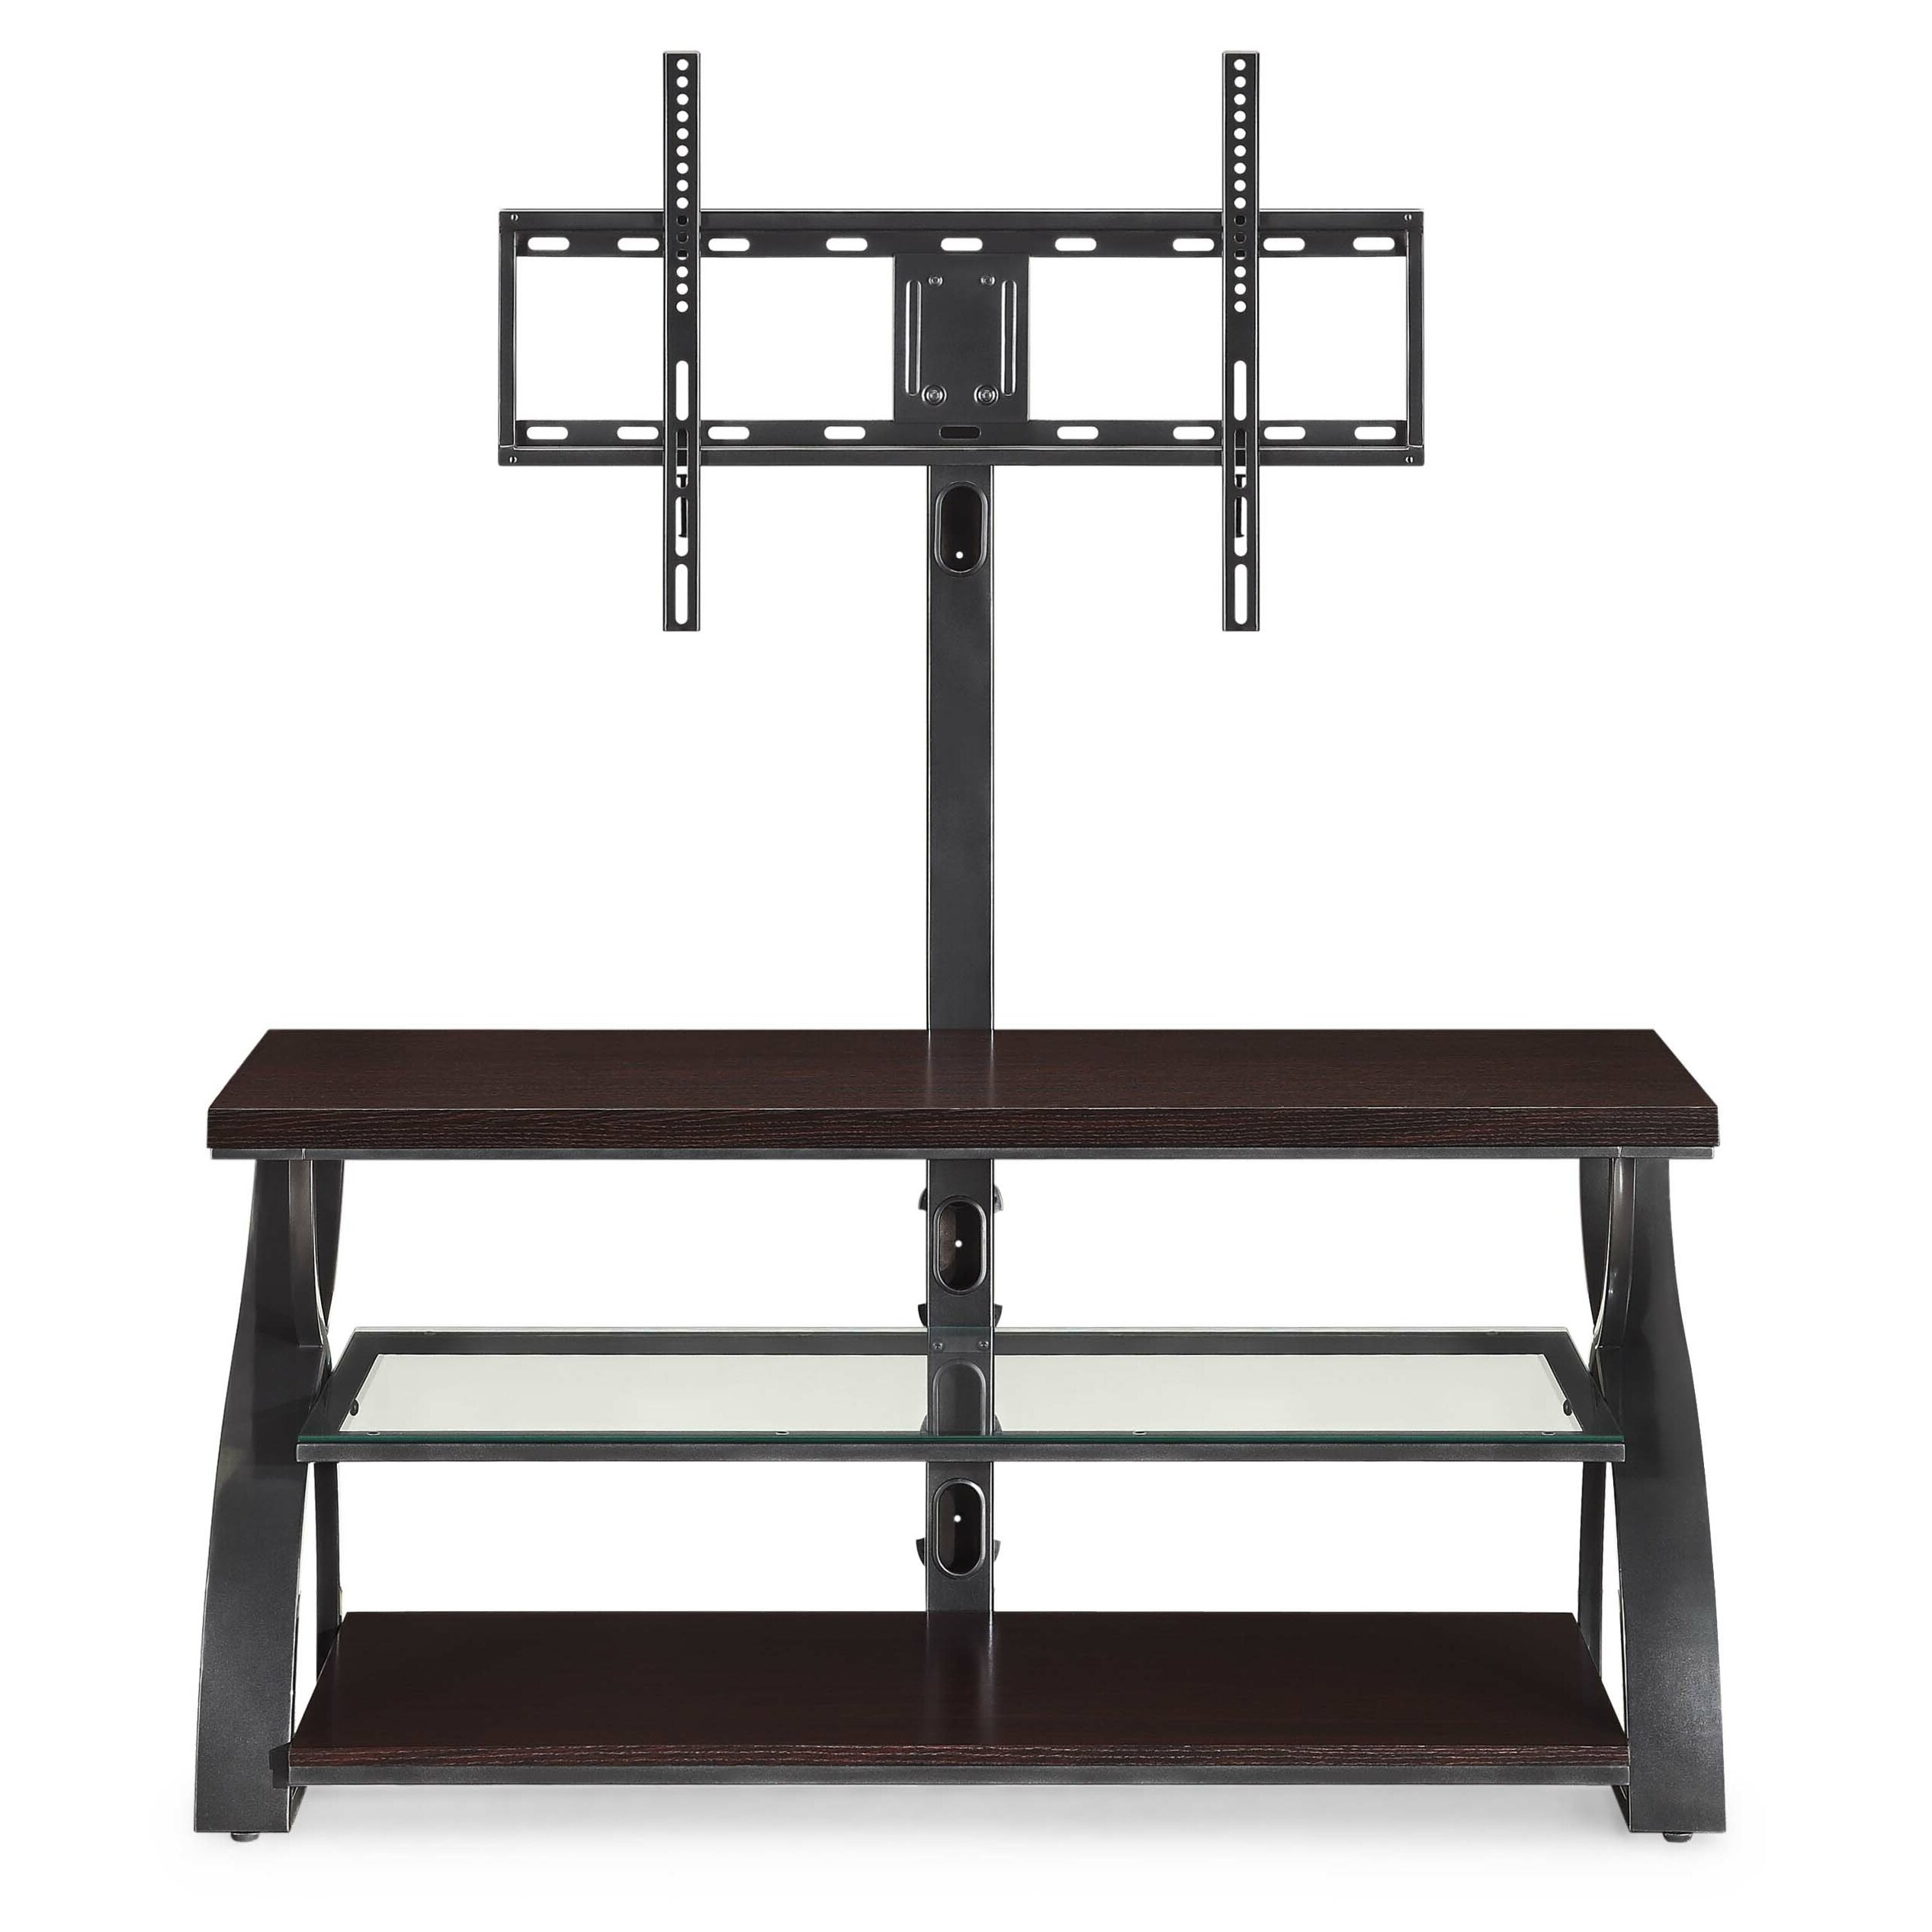 Whalen furniture calico tv stand reviews wayfair for Whalen furniture